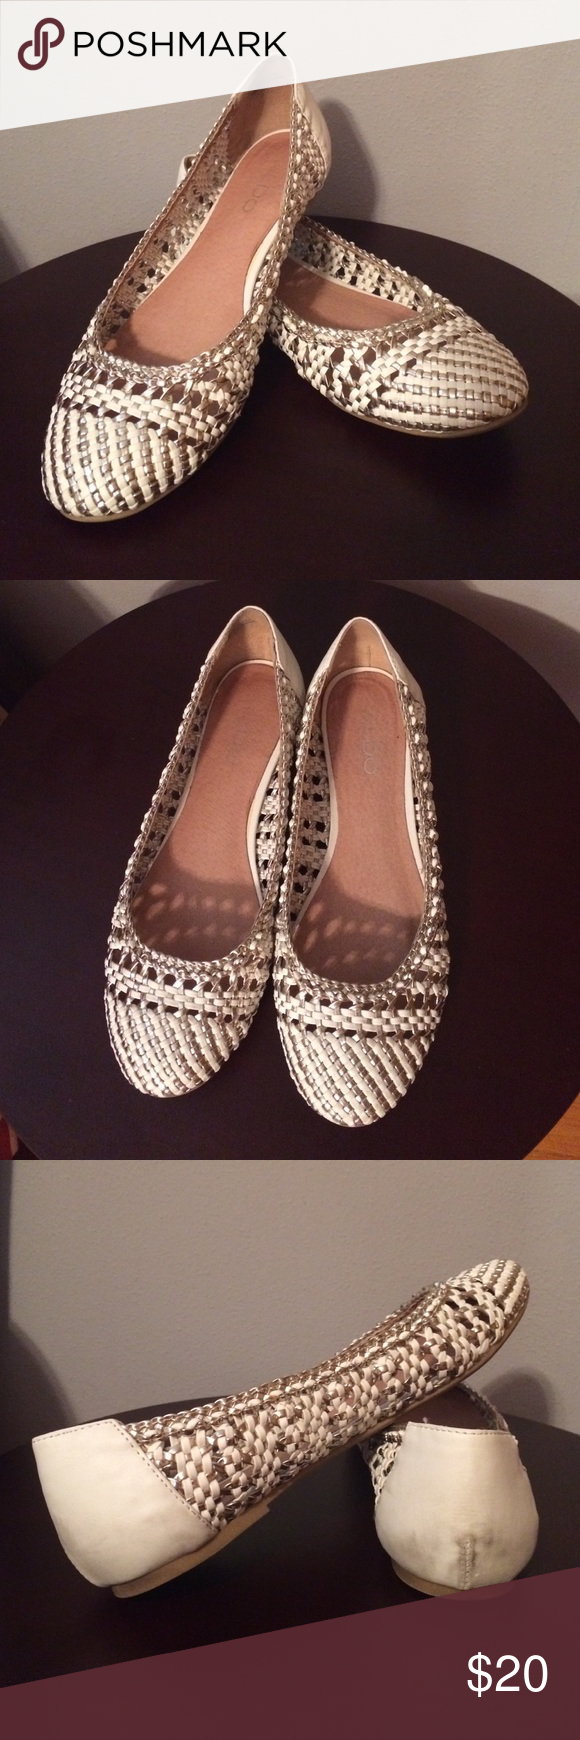 White aldo flats Aldo white and silver weave ballet flats. They are in very excellent condition besides some scuffing in back as shown in picture. Aldo Shoes Flats & Loafers